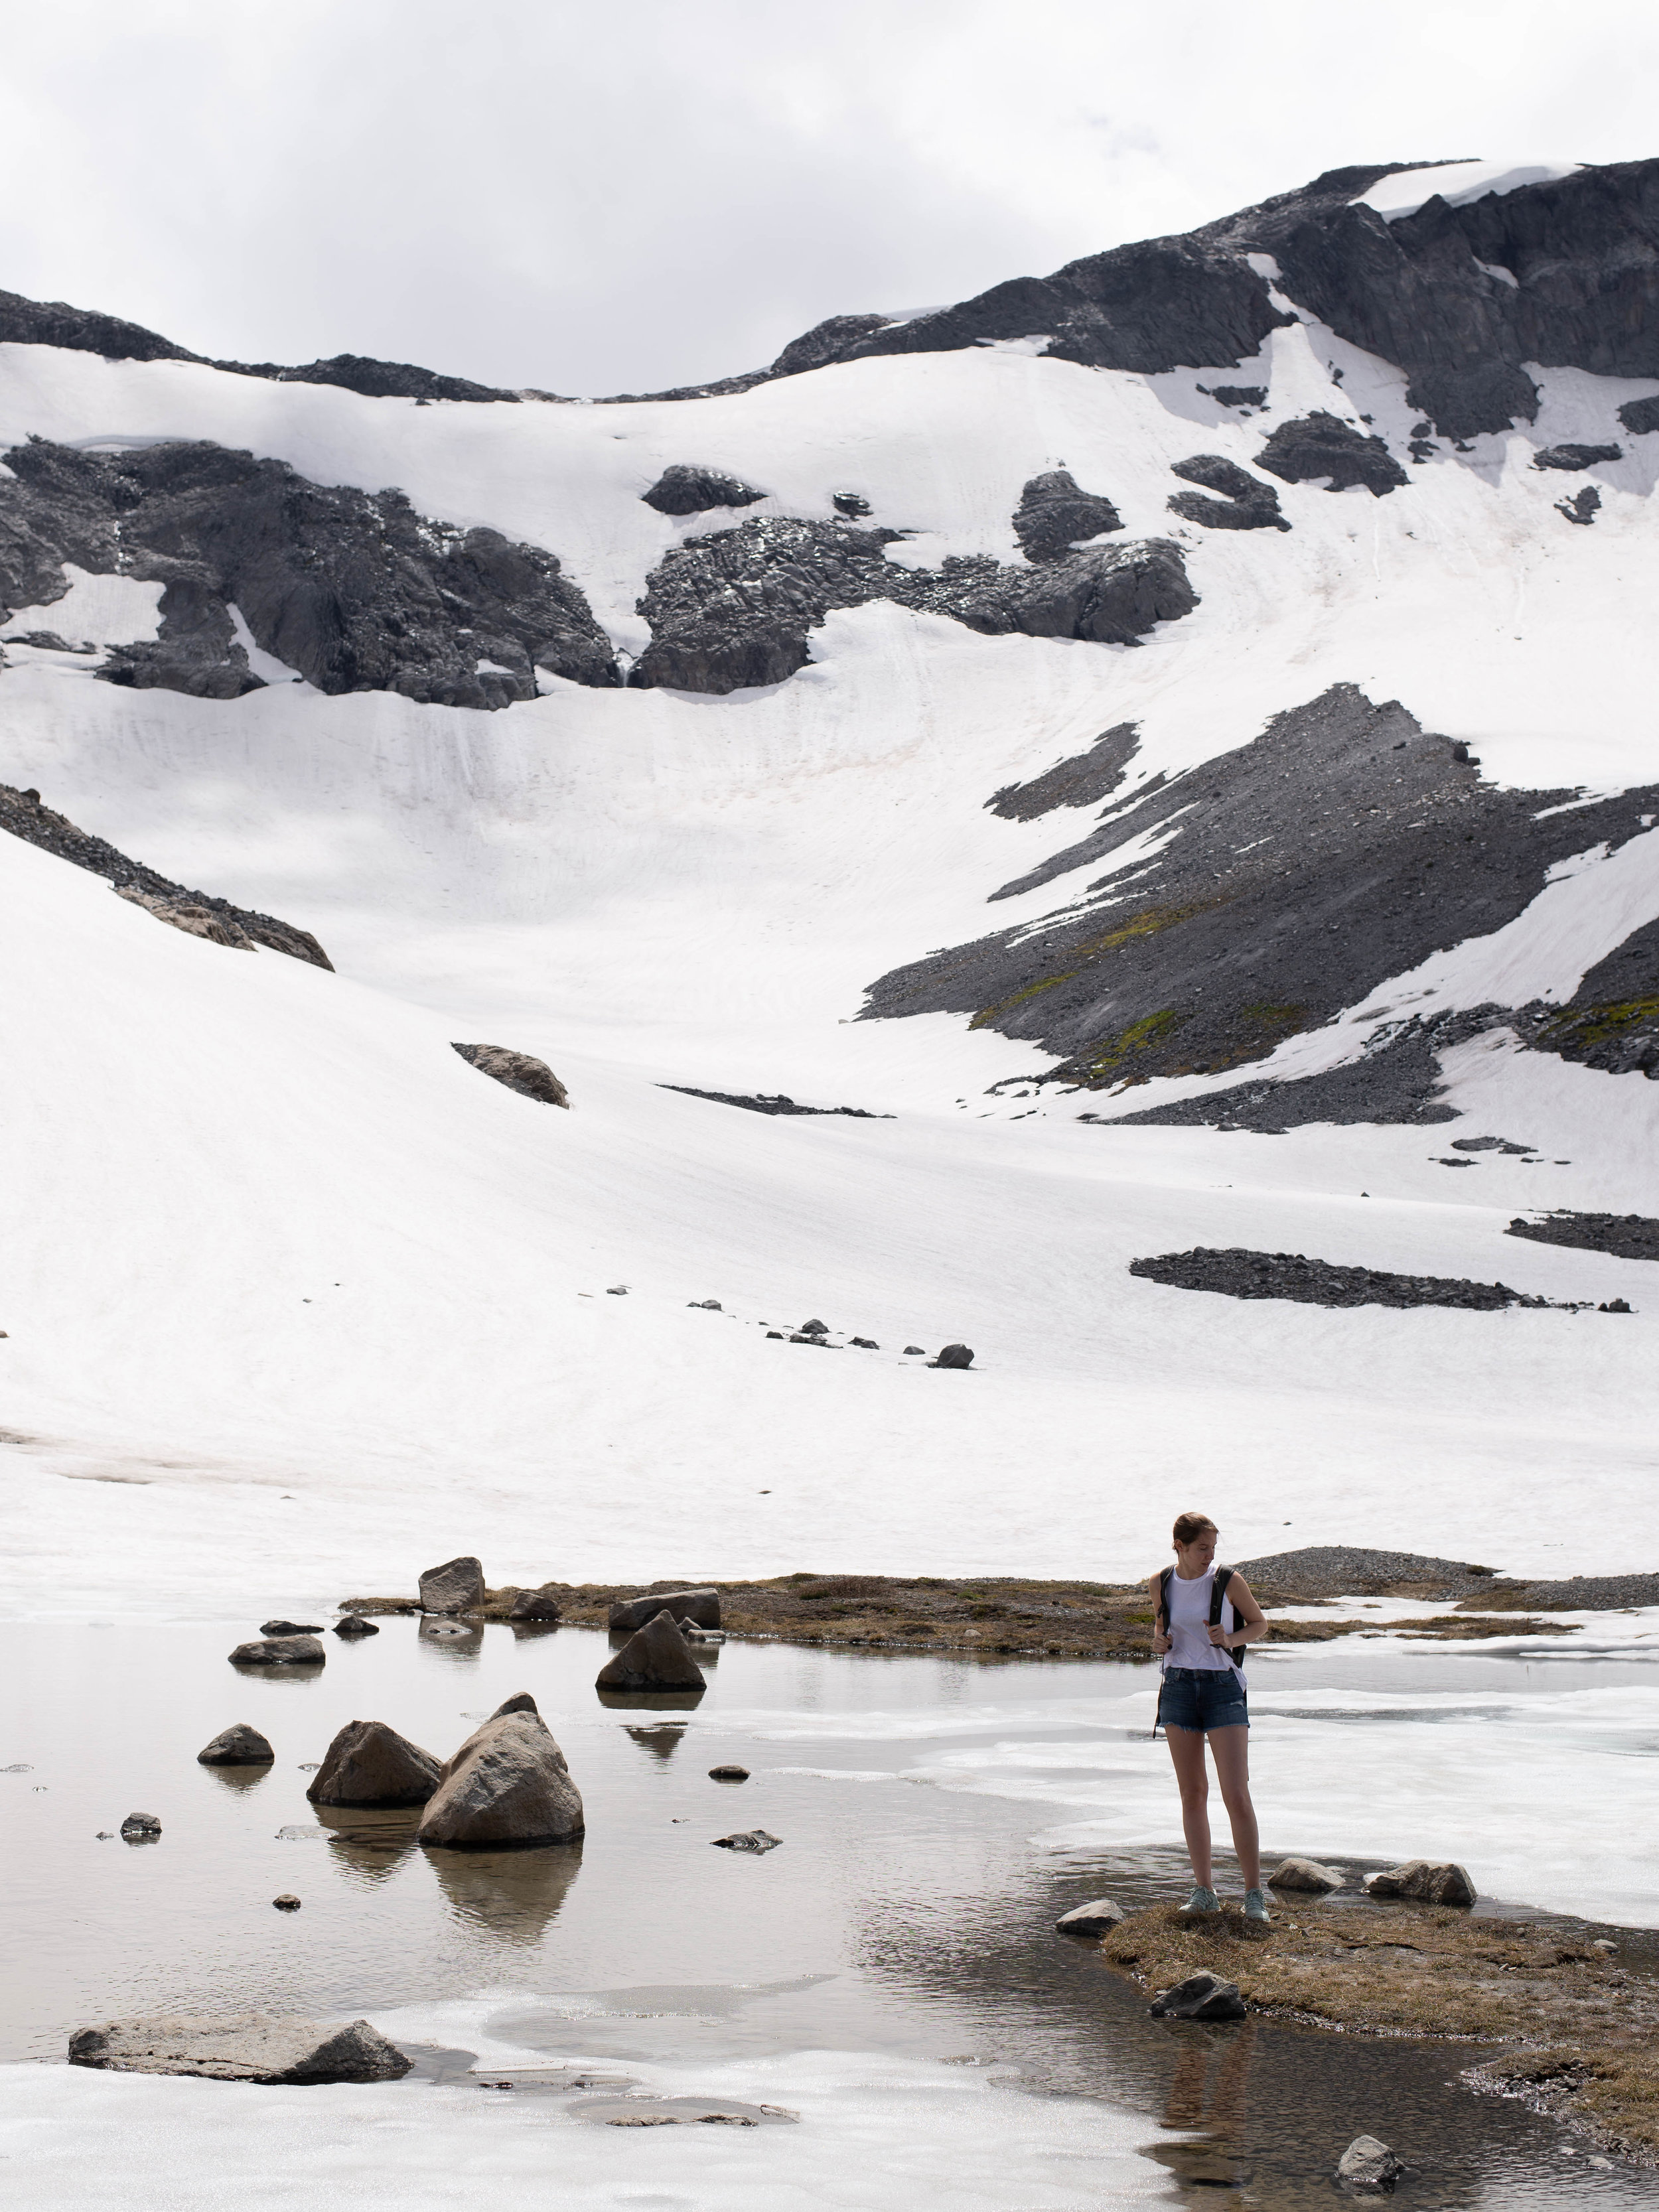 Rocks and snowy slopes on Mt. Rainier's Panhandle Gap trail